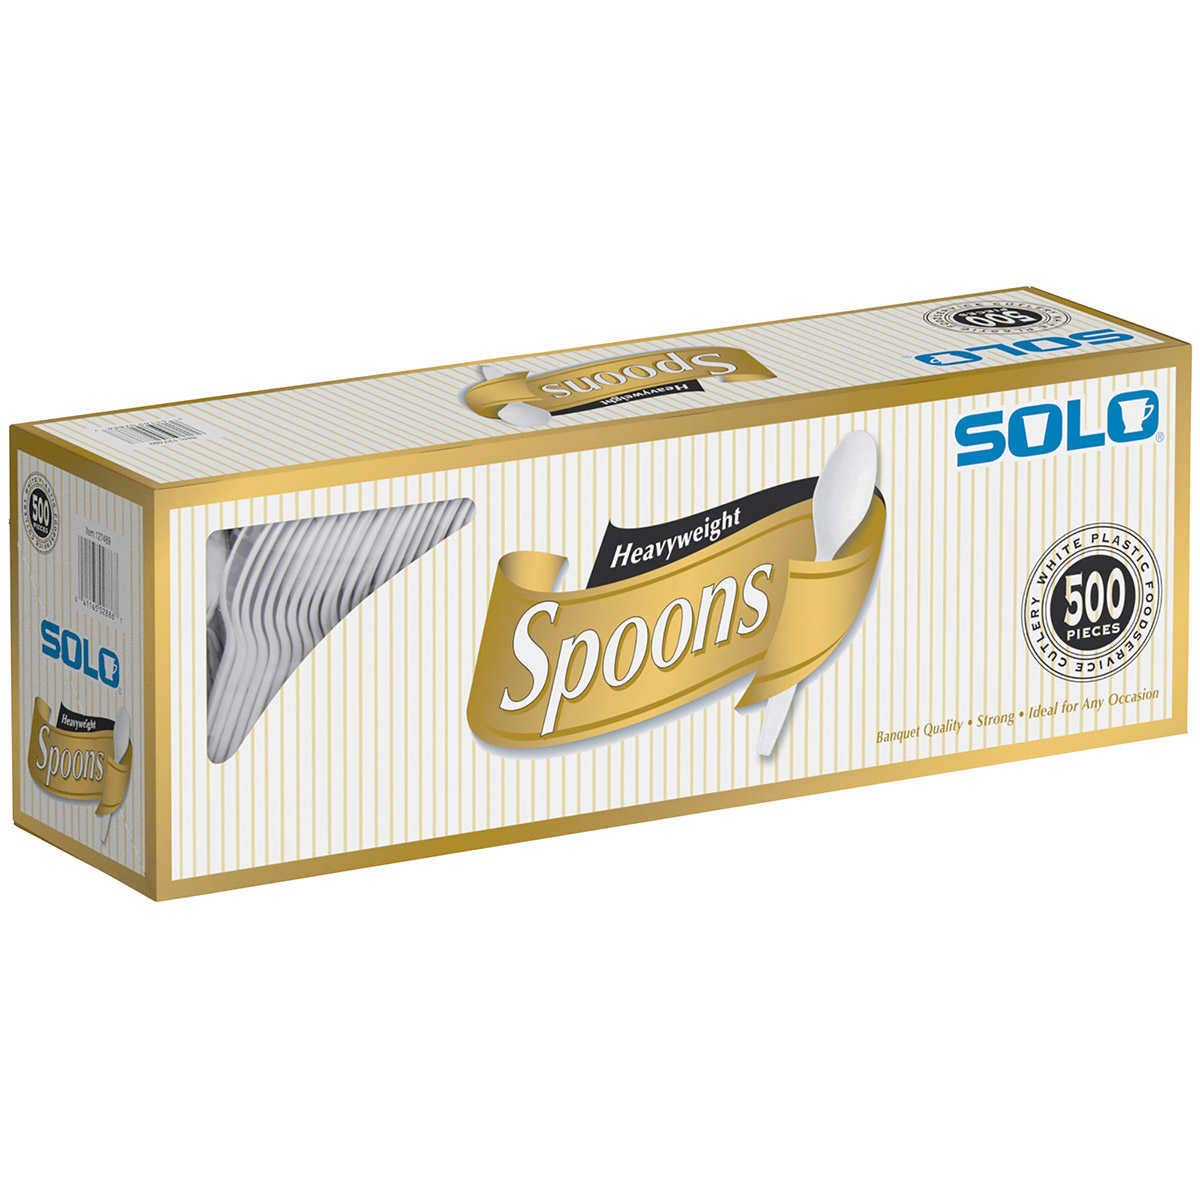 Solo Plastic Spoon White 500ct, Pack of 1, spoons-500 by SOLO